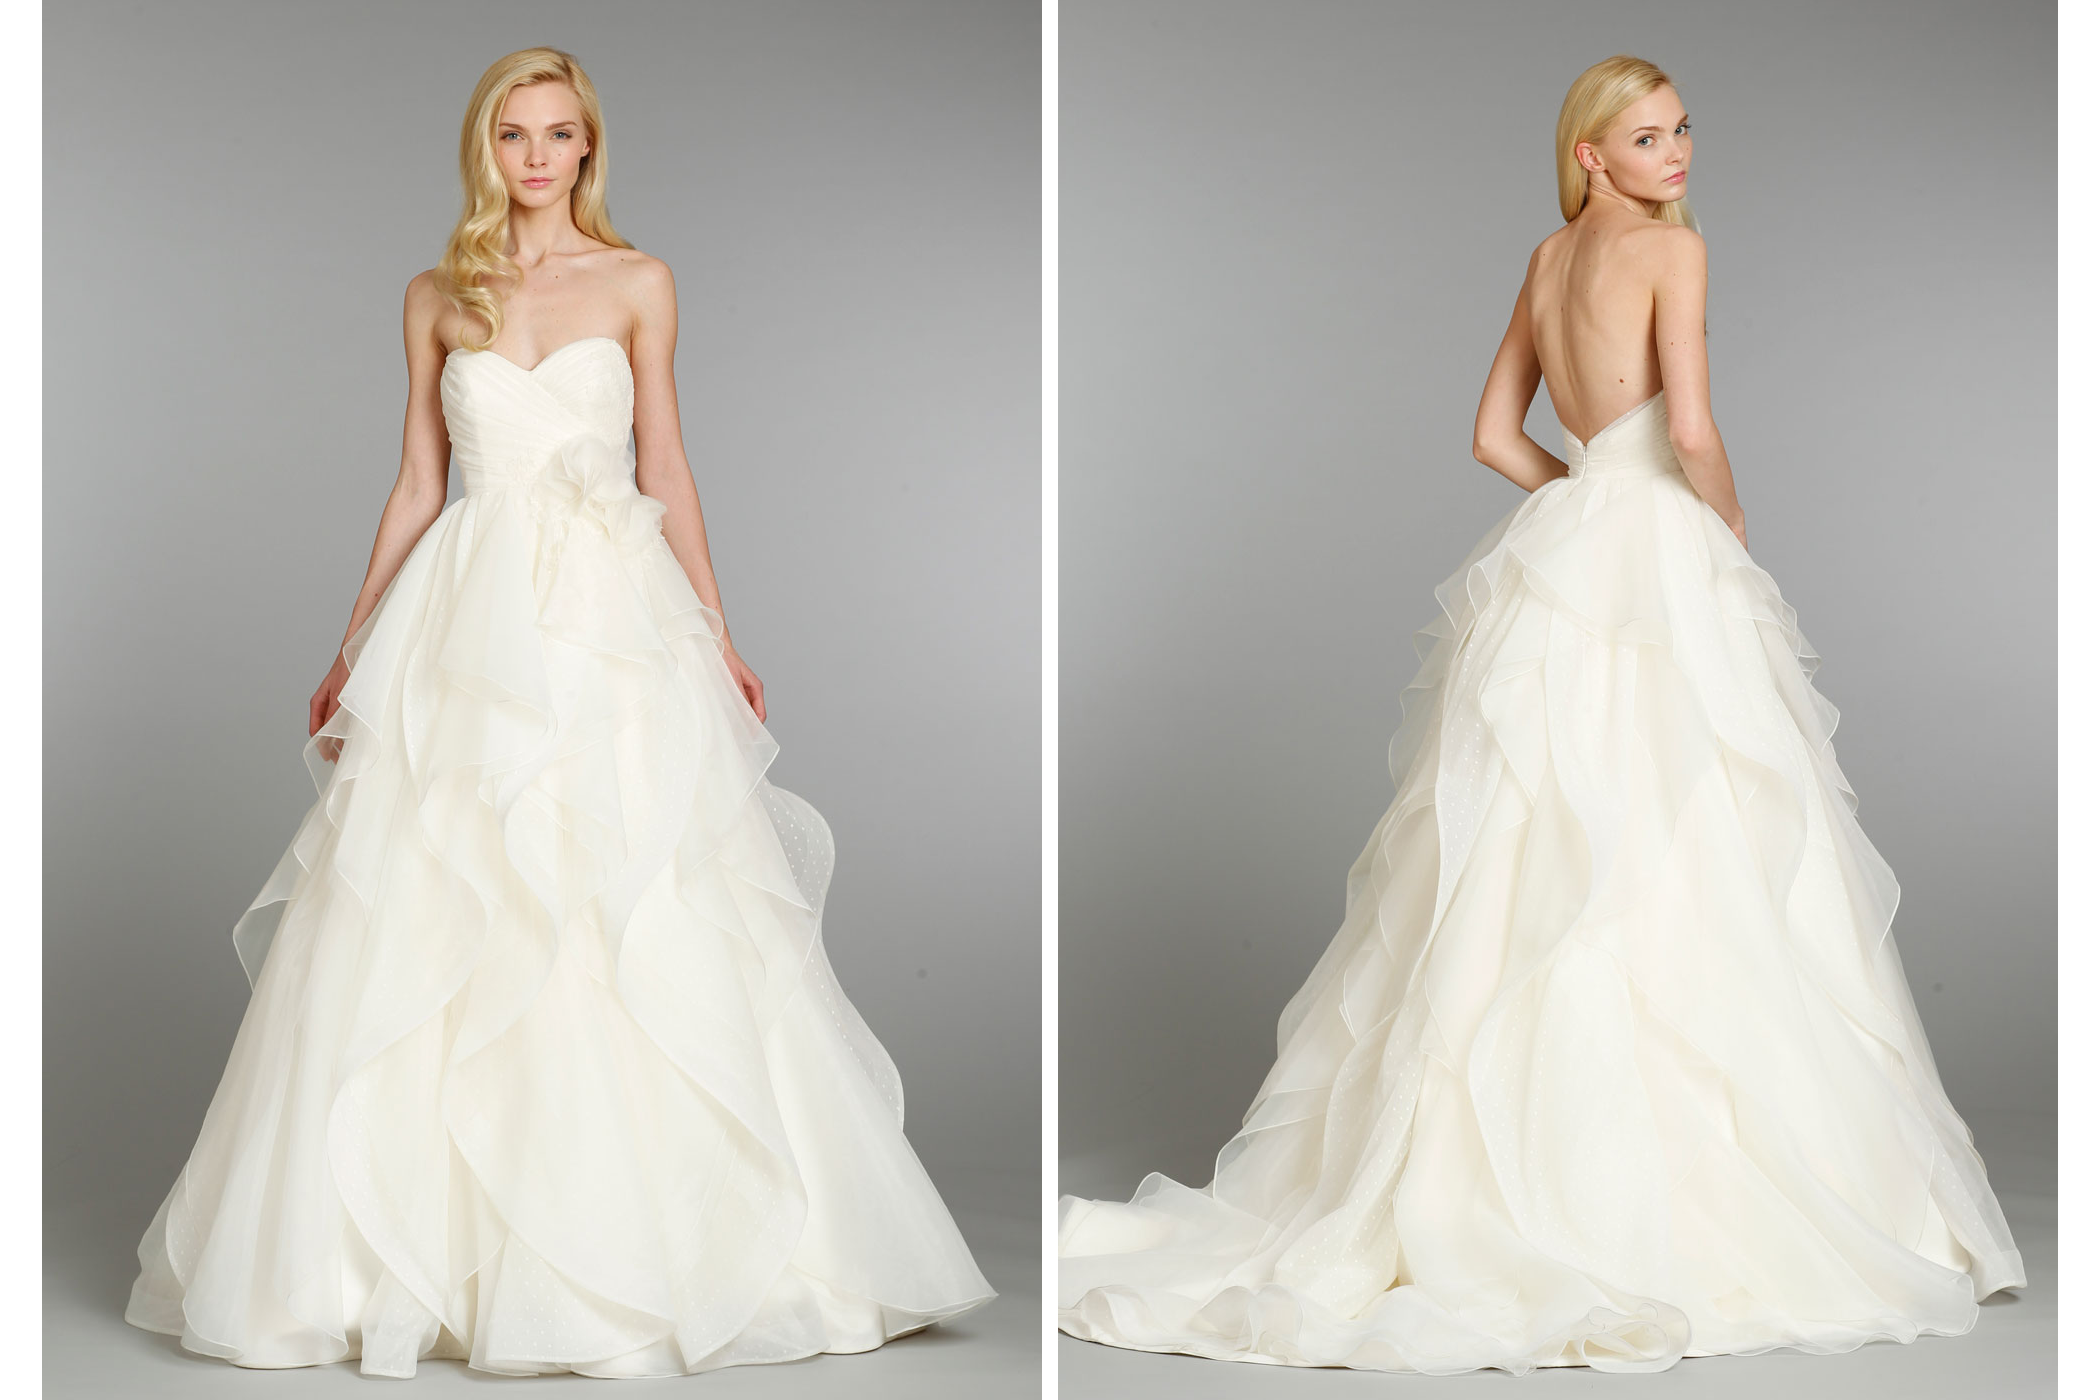 Hayley paige wedding dress fall 2013 bridal 6361 for Hayley paige wedding dress